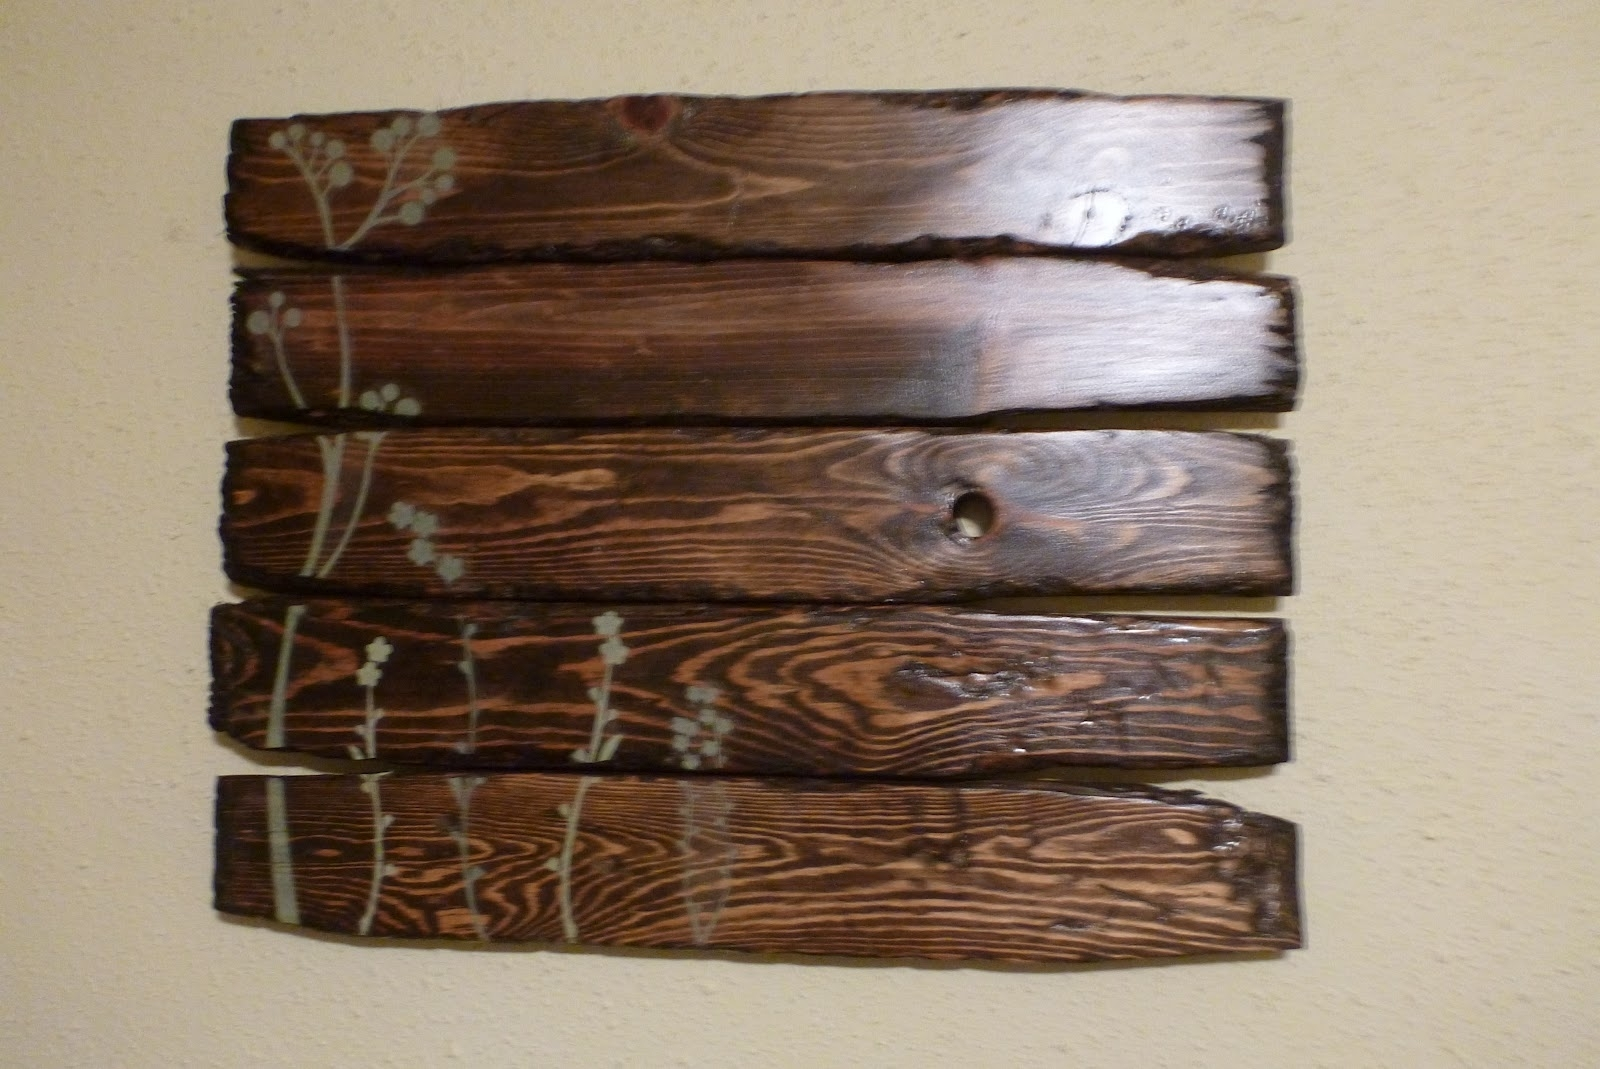 Handmade Mayhem: Reclaimed Wood Wall Art Pertaining To Best And Newest Reclaimed Wood Wall Art (View 7 of 15)